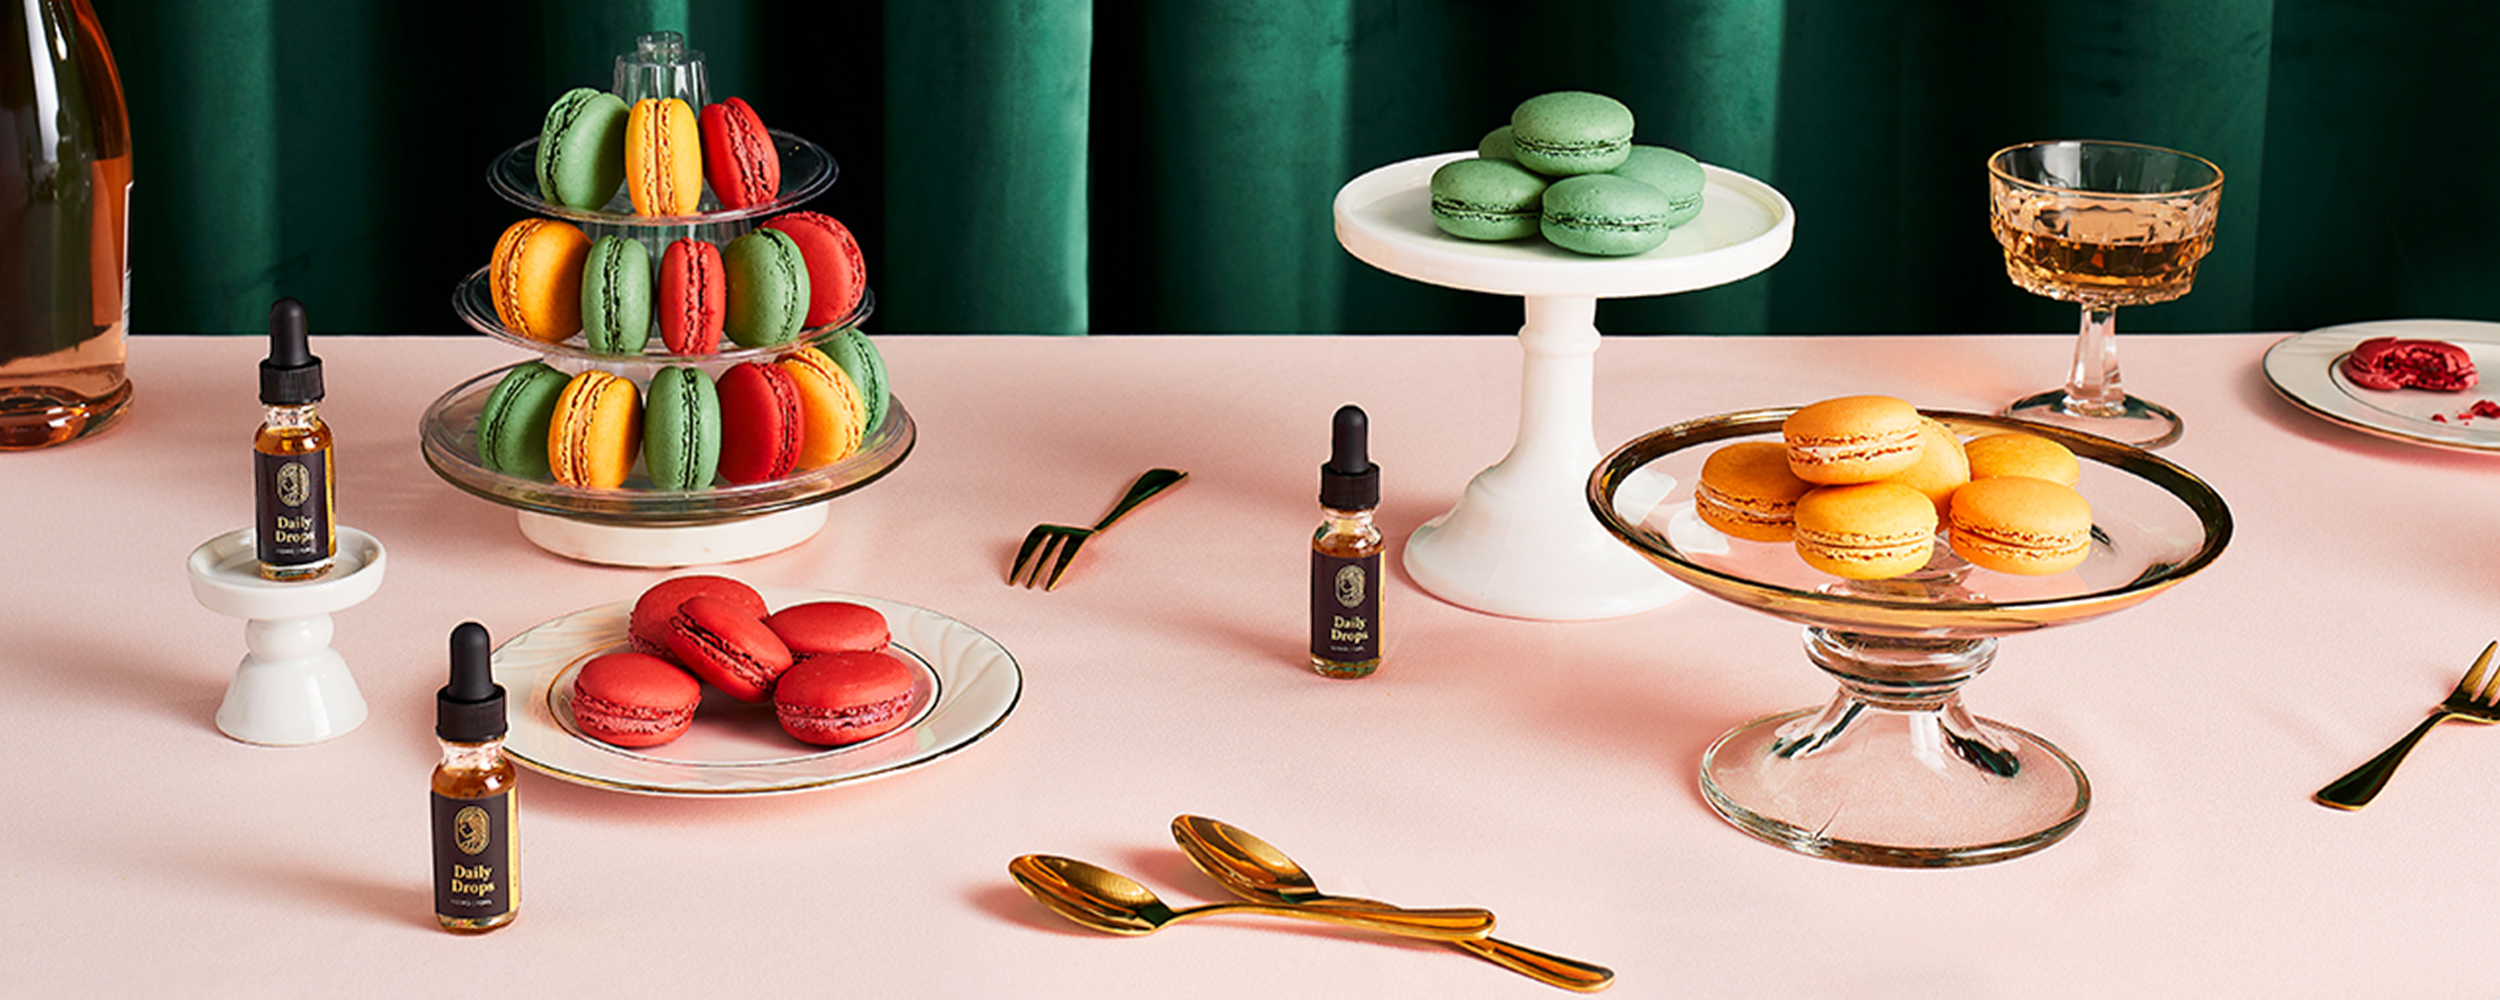 Meet The Indulgence Collection: Our Newest Self-Care Treat